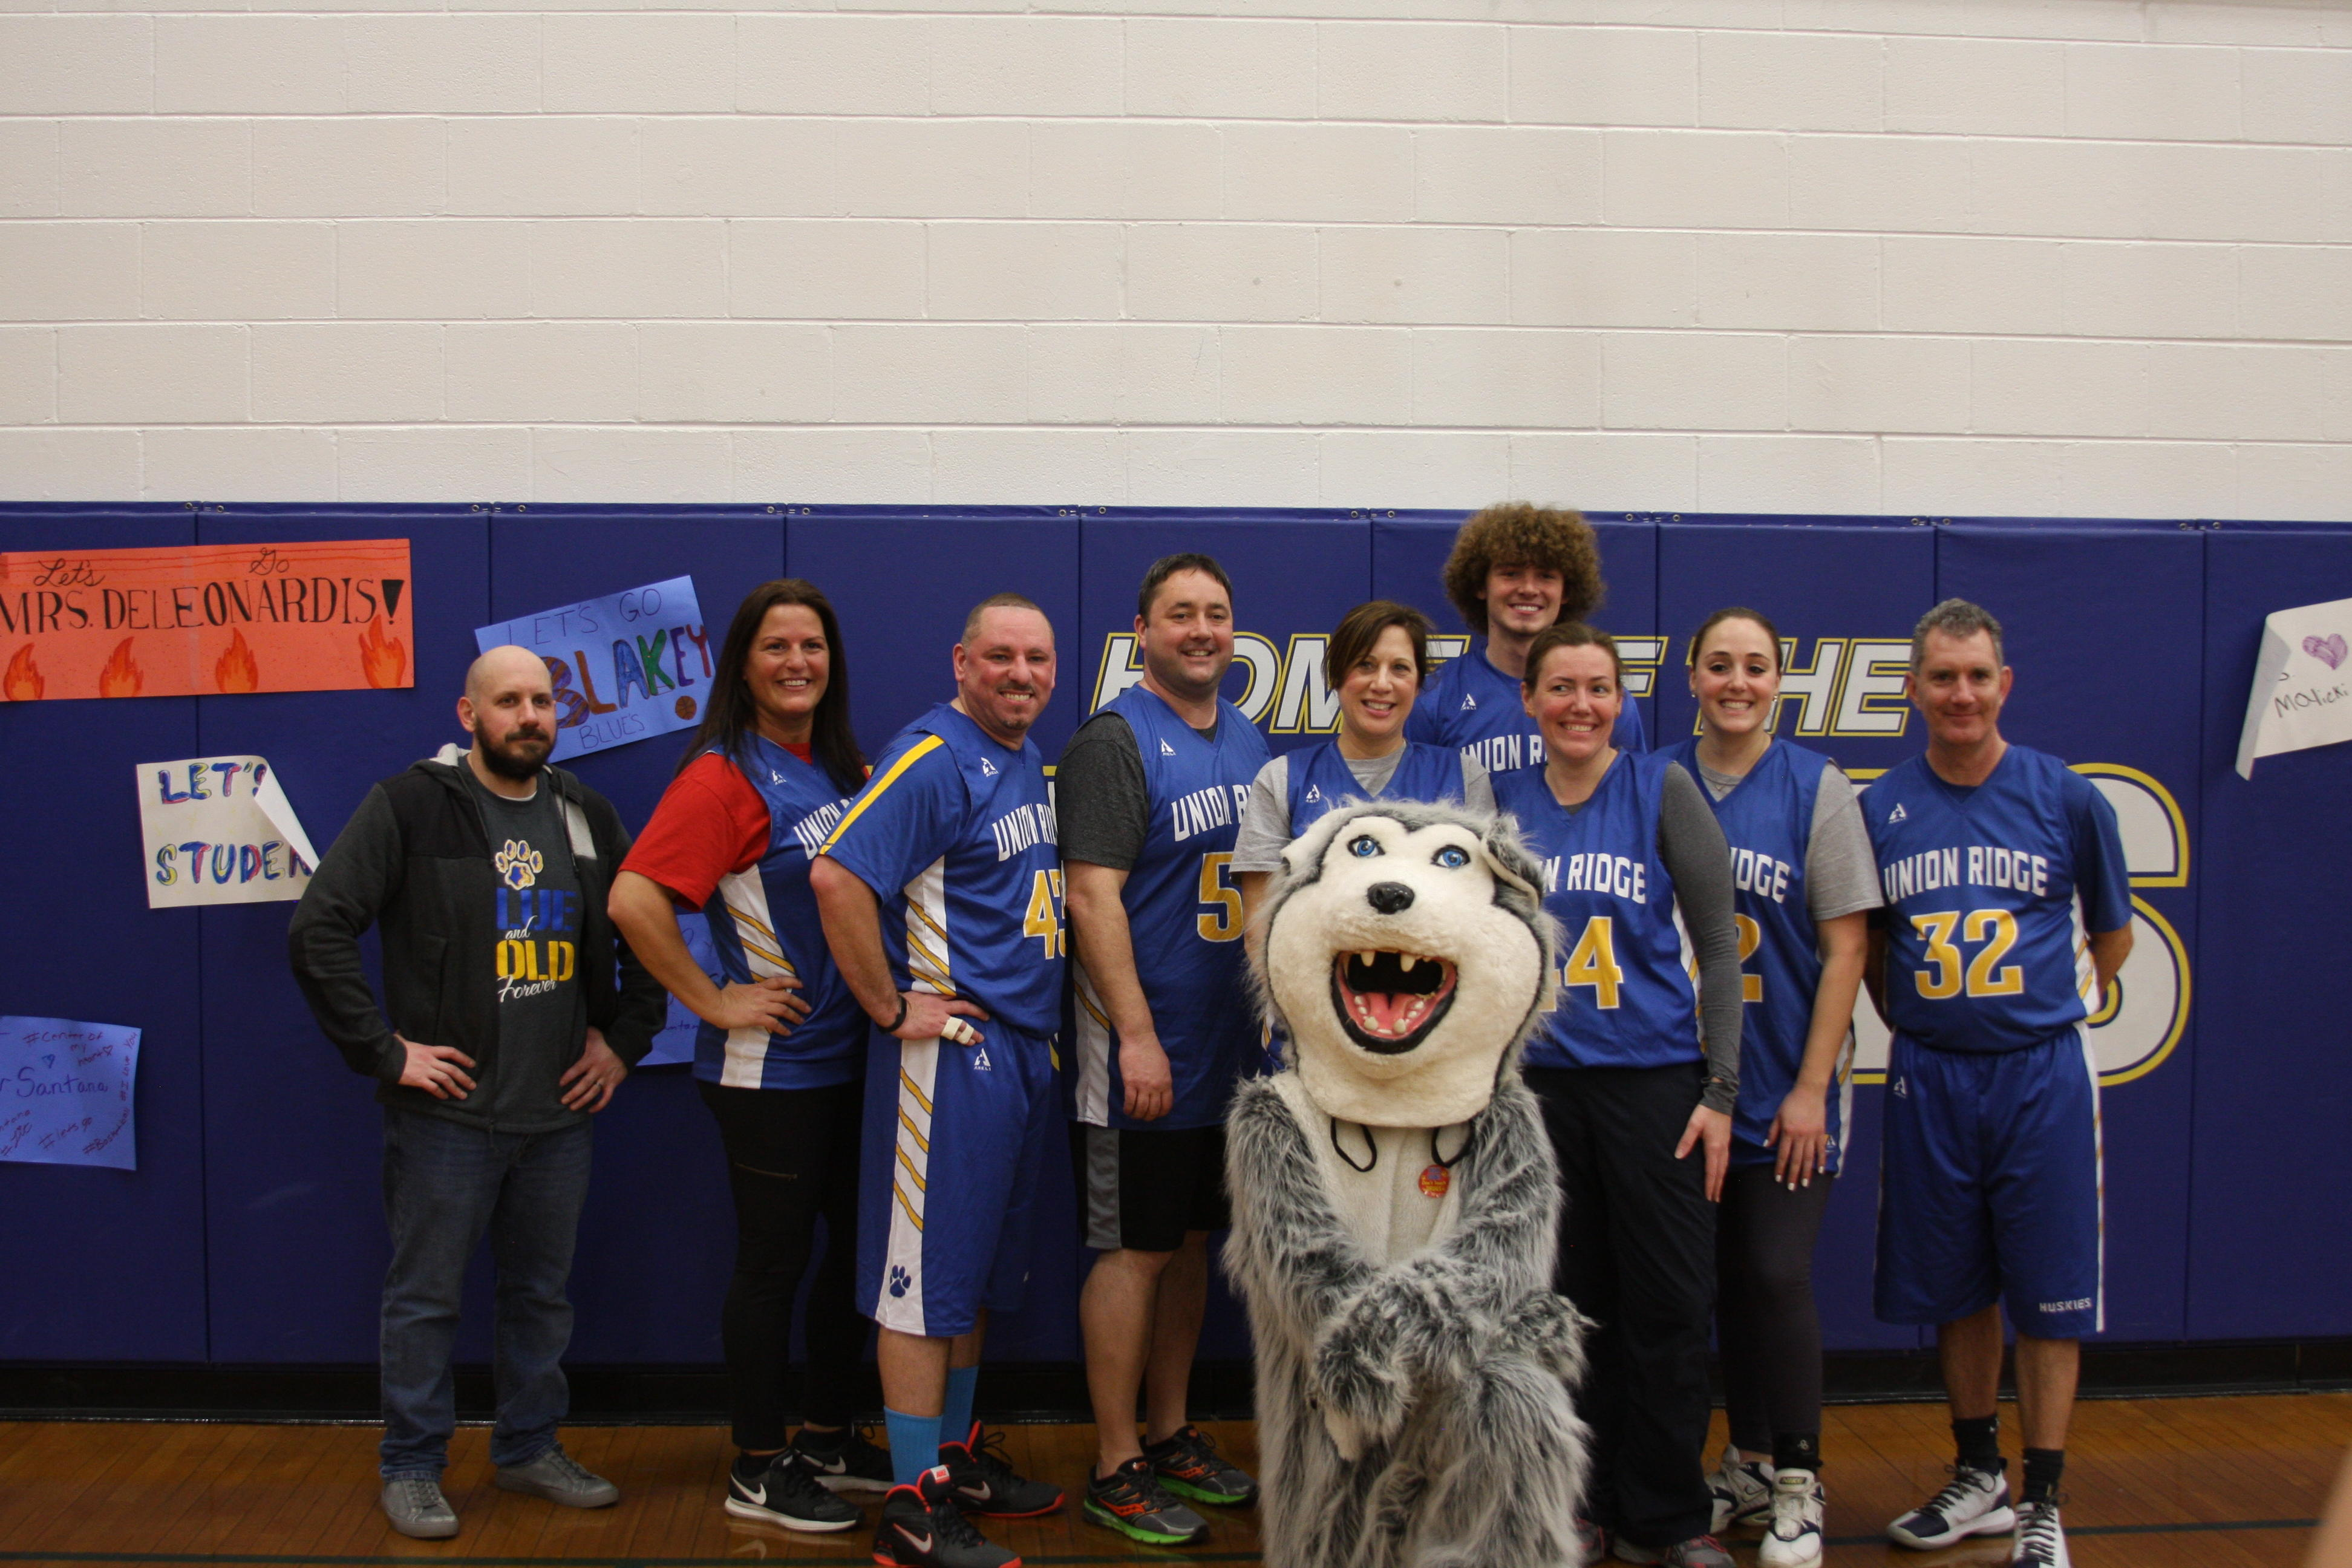 hoops for heart teacher's team posing for picture